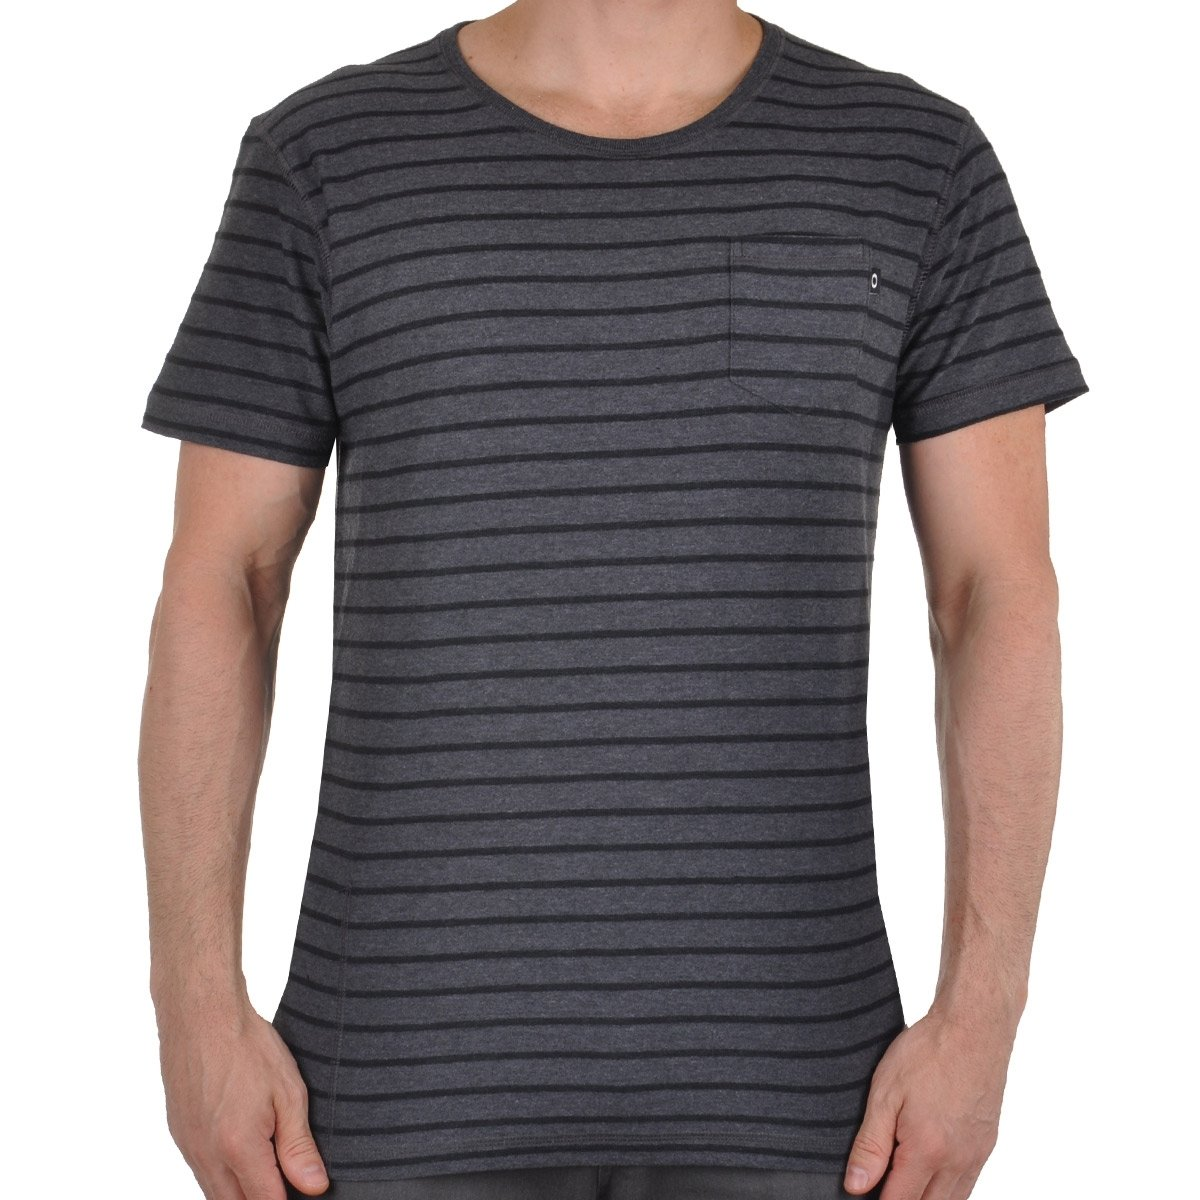 Camiseta Masculino Cold Oakley Chumbo Camiseta Striped Oakley 57qxtaX7